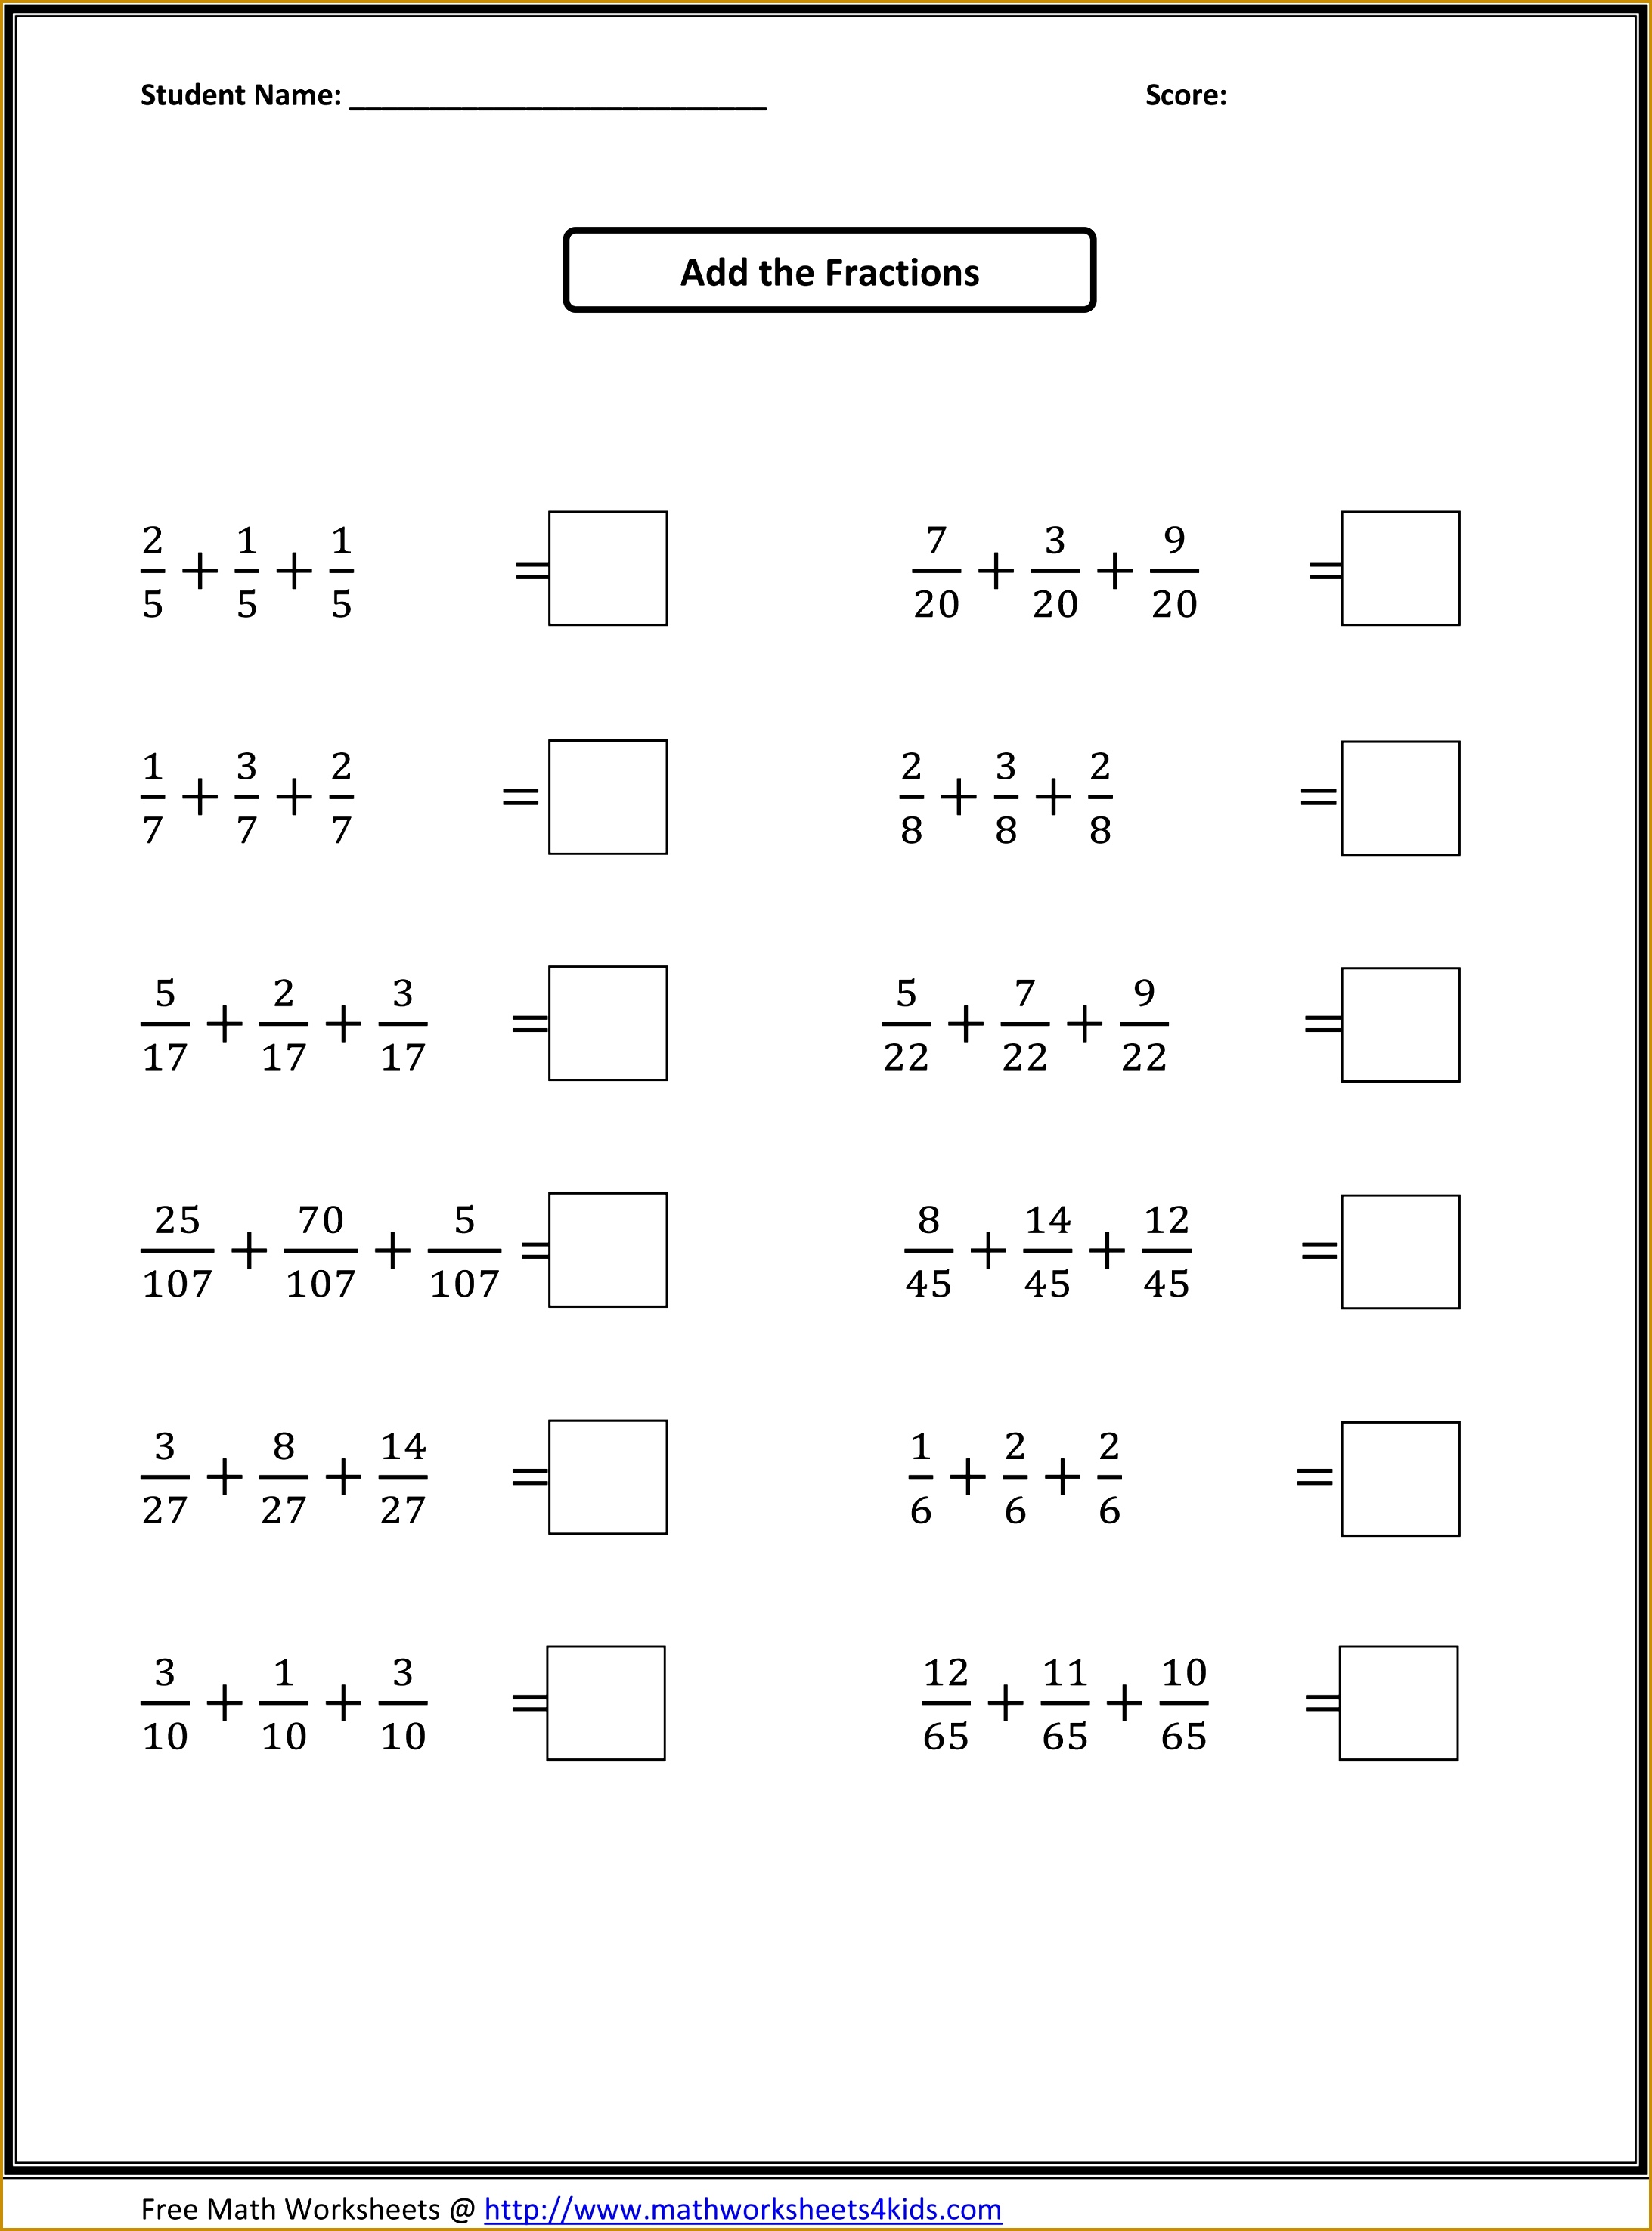 4Th Grade Math Sheets To Print Worksheets for all Download and Worksheets 29512185